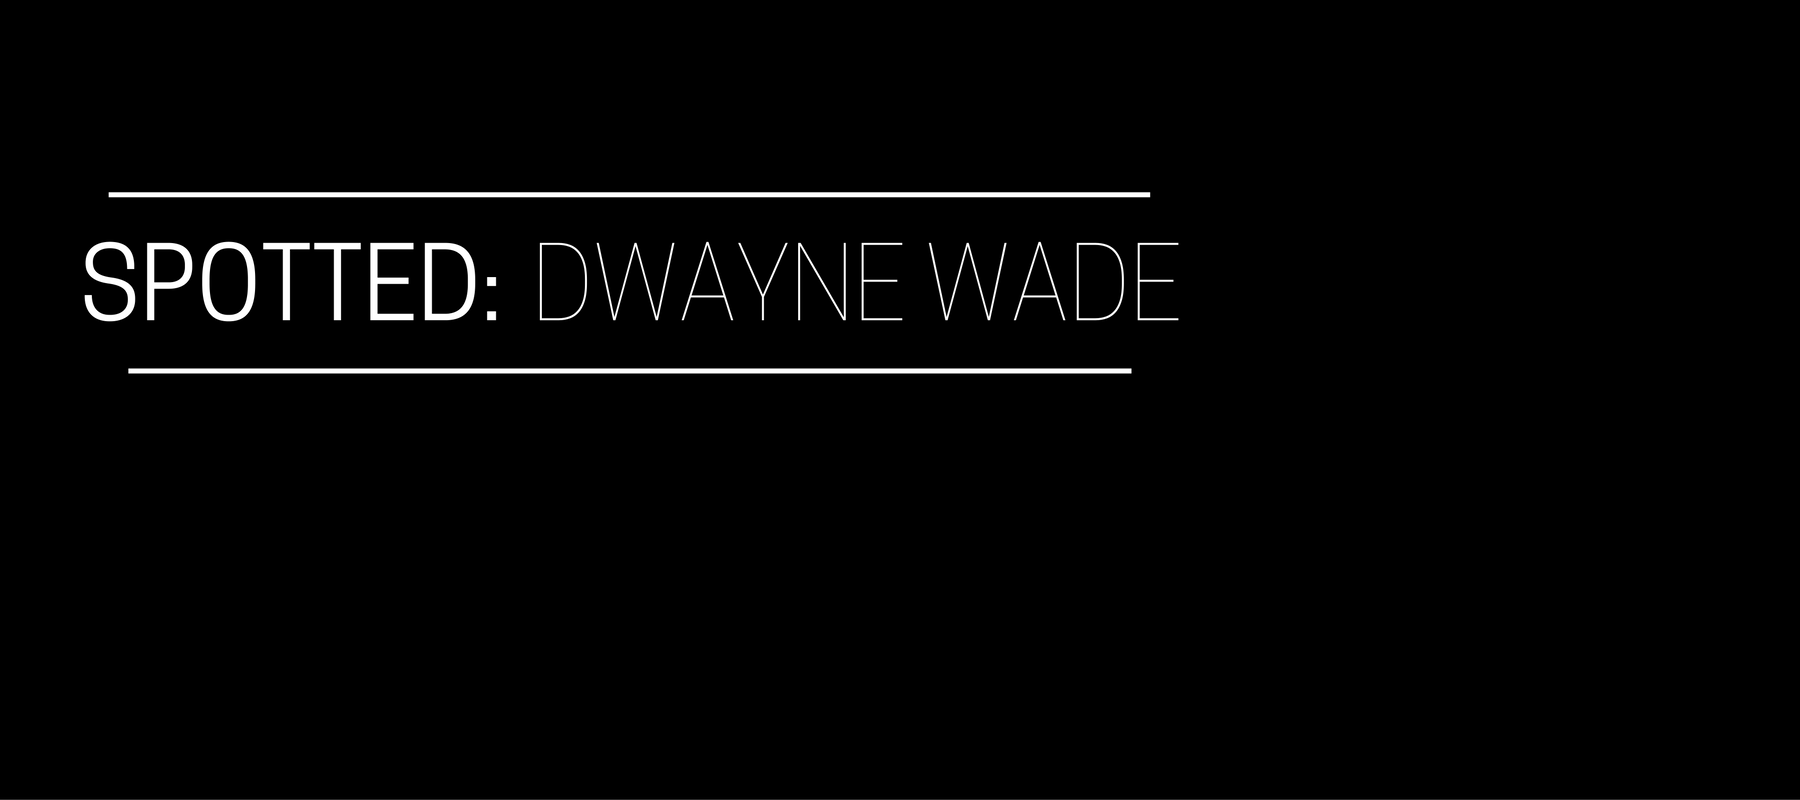 Spotted: Dwayne Wade